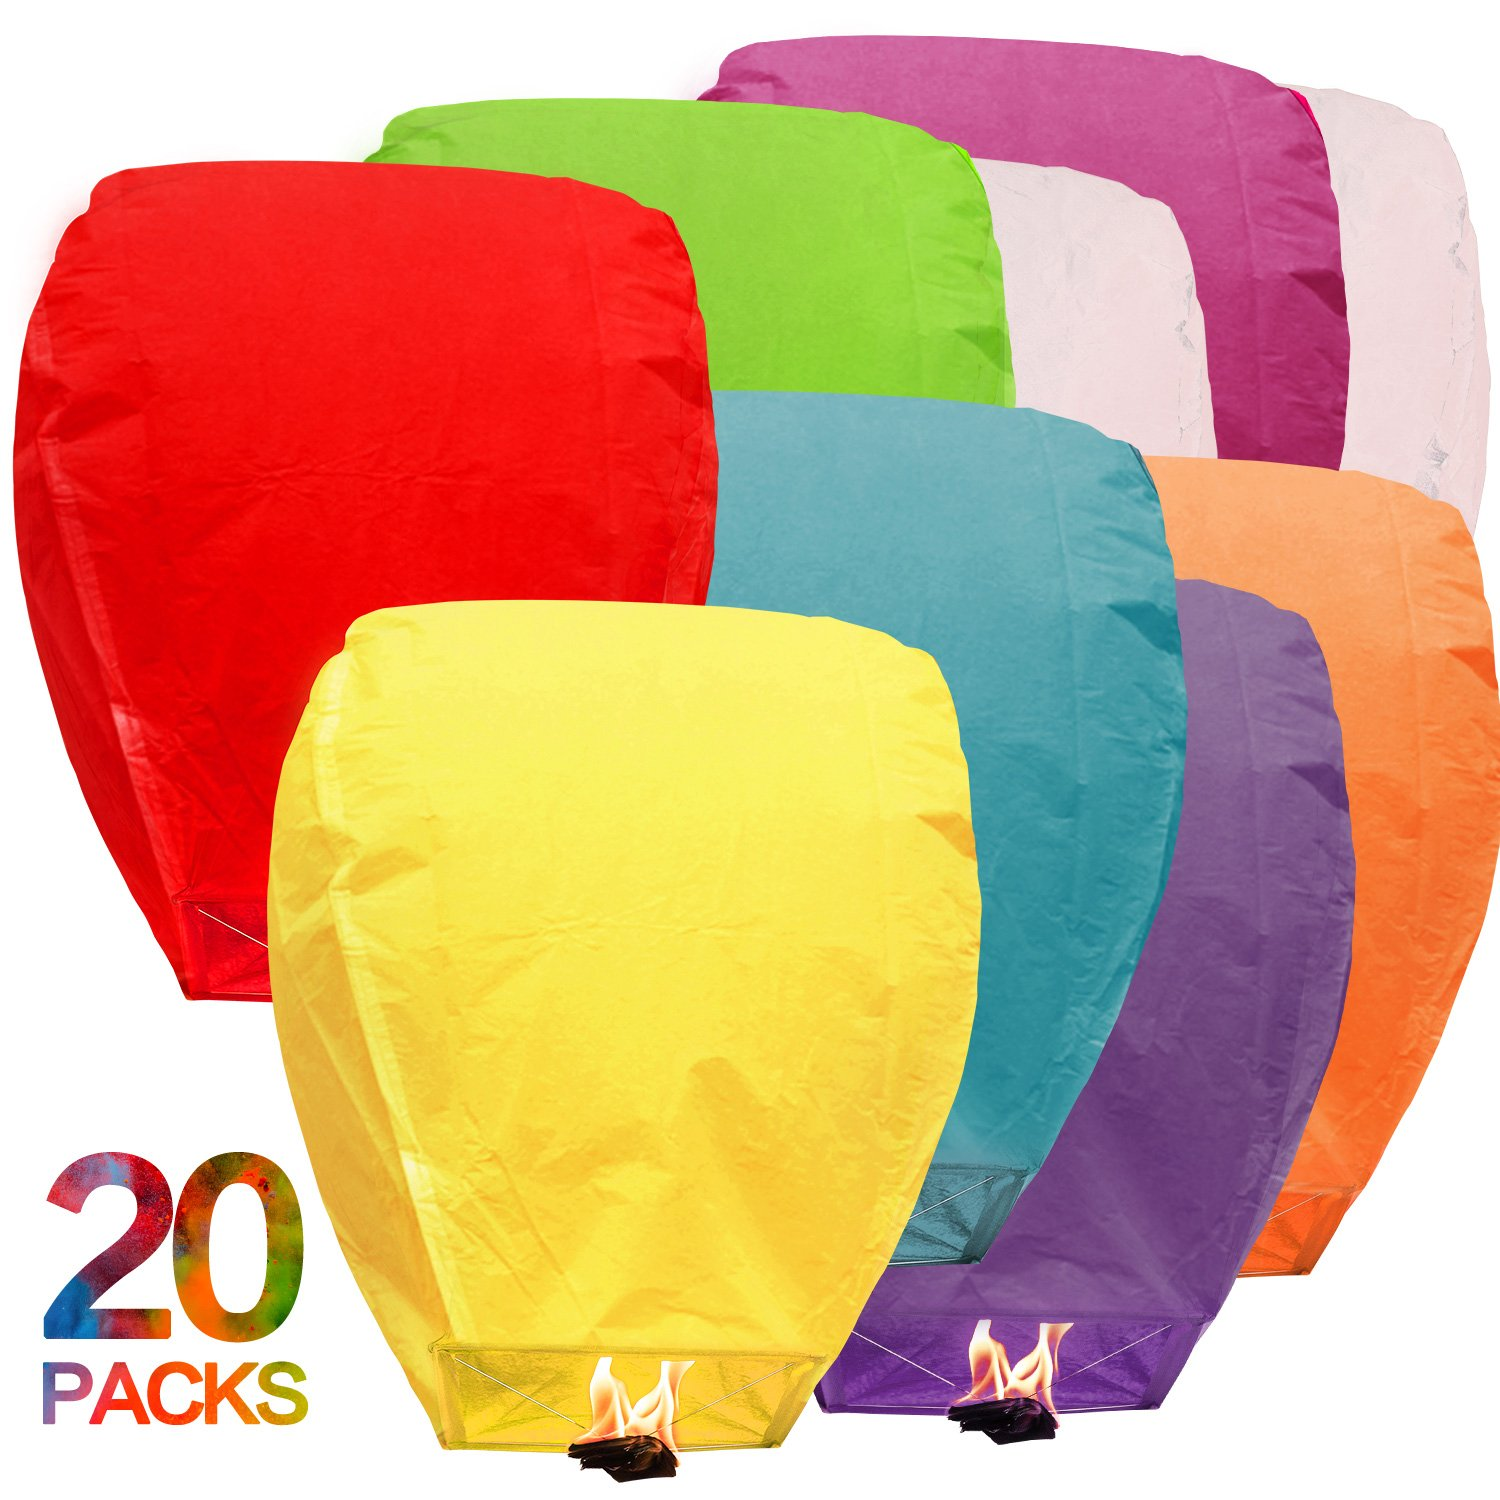 New Sky Lanterns Chinese Biodegradable Paper Bulk Assortment Romantic Night Blue Red and Other Mixed Colors 20 pack For Party Sea Beach Vacation Holiday